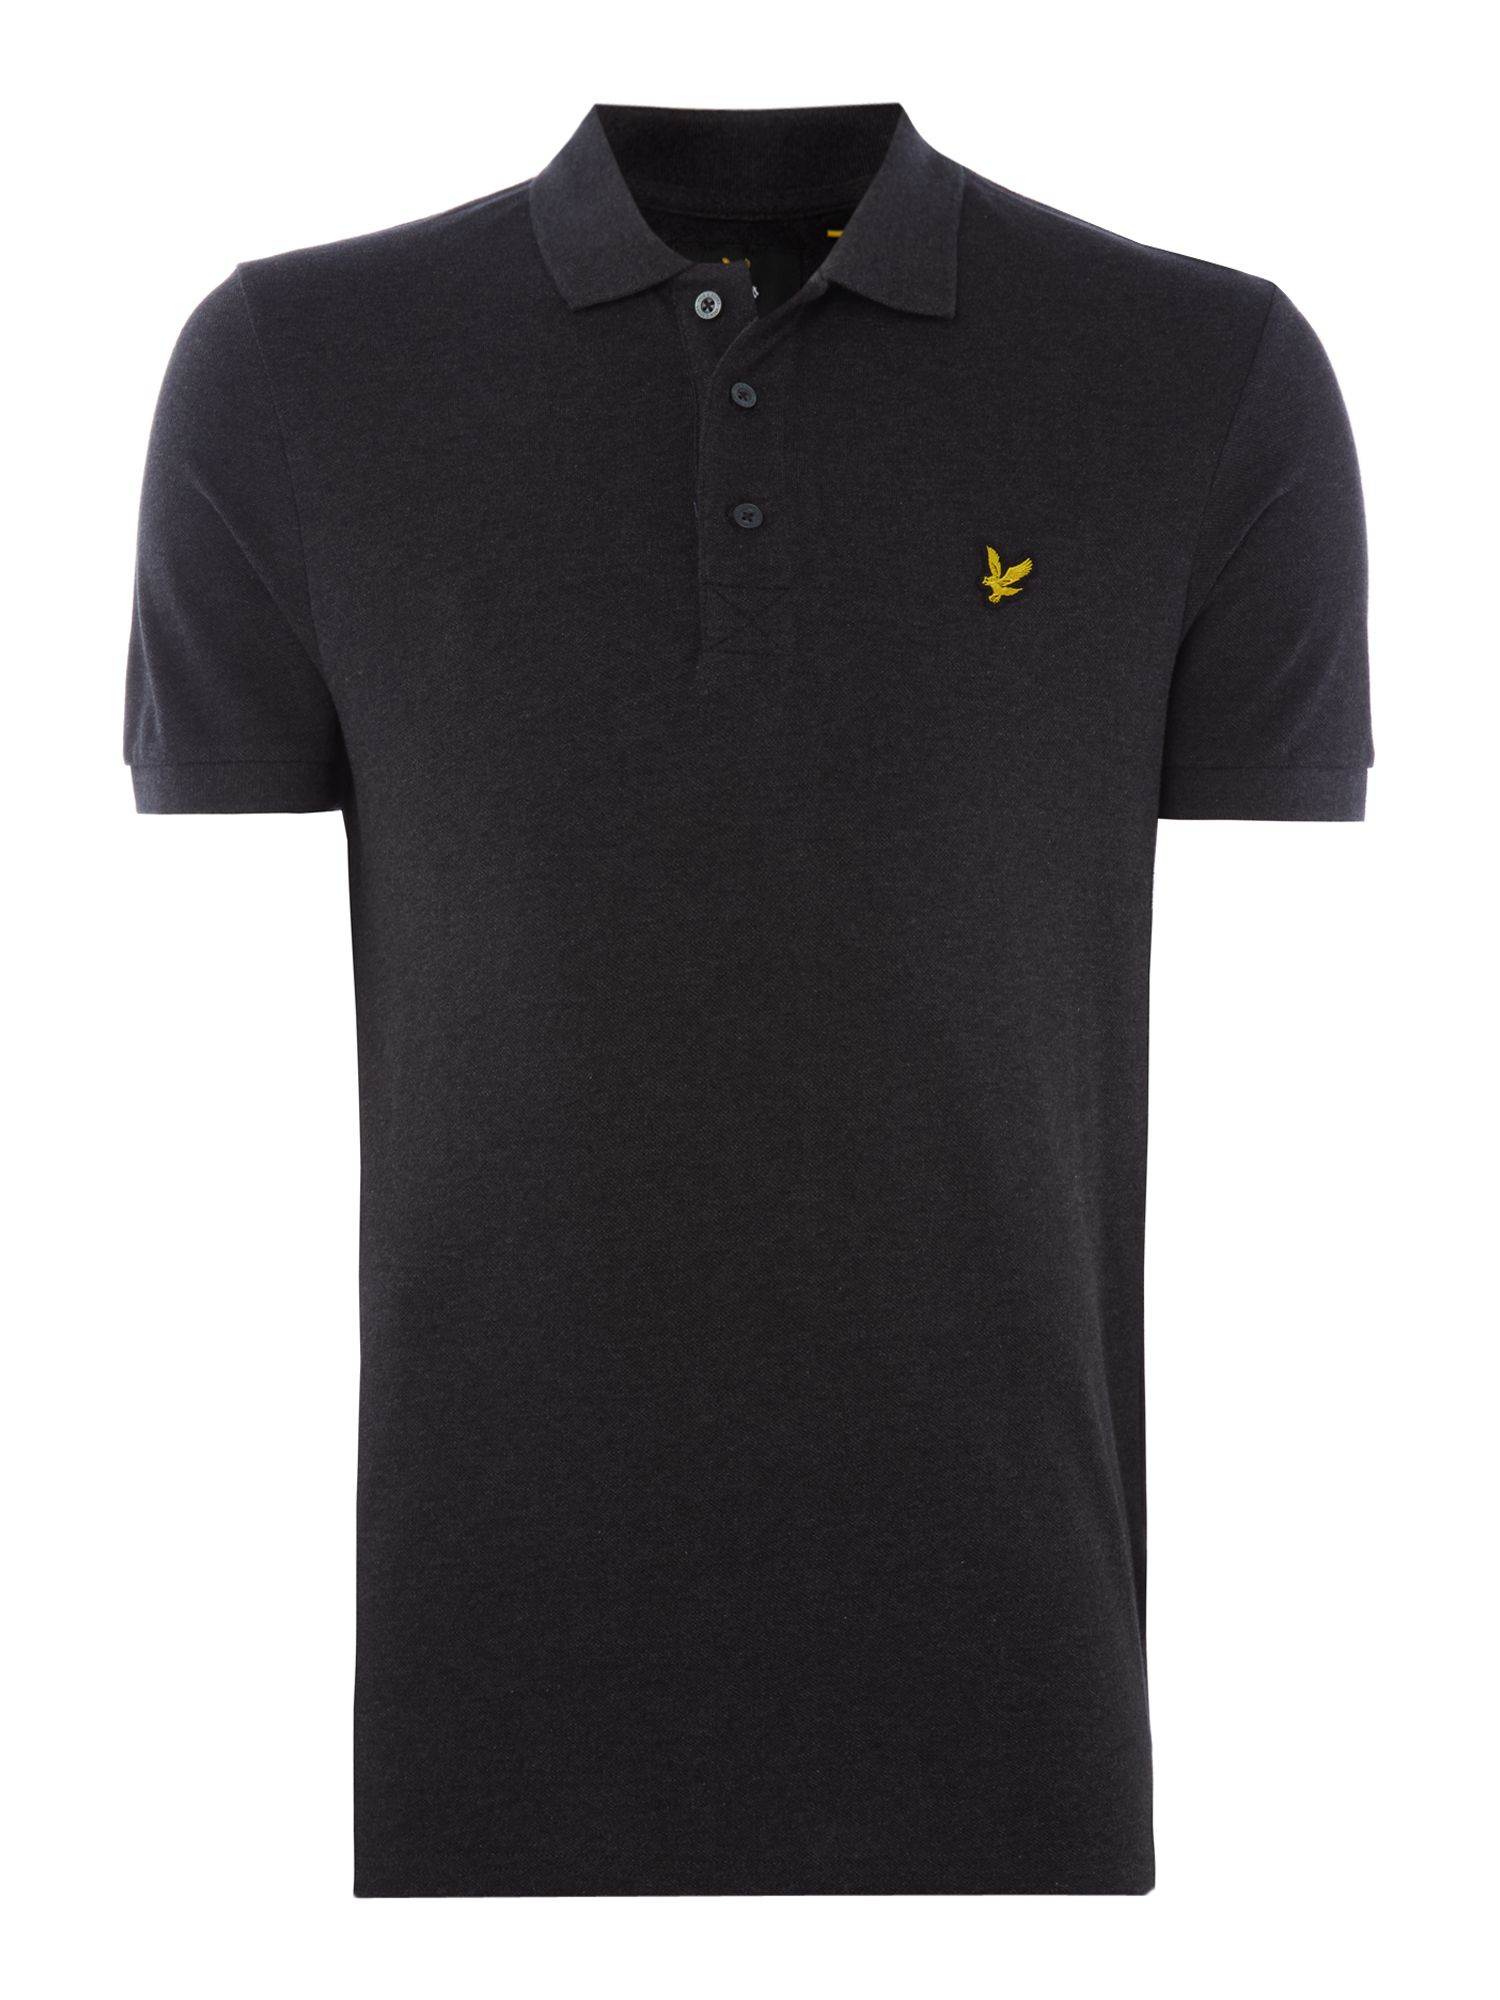 Men's Lyle and Scott Short Sleeve Classic Polo, Charcoal Marl